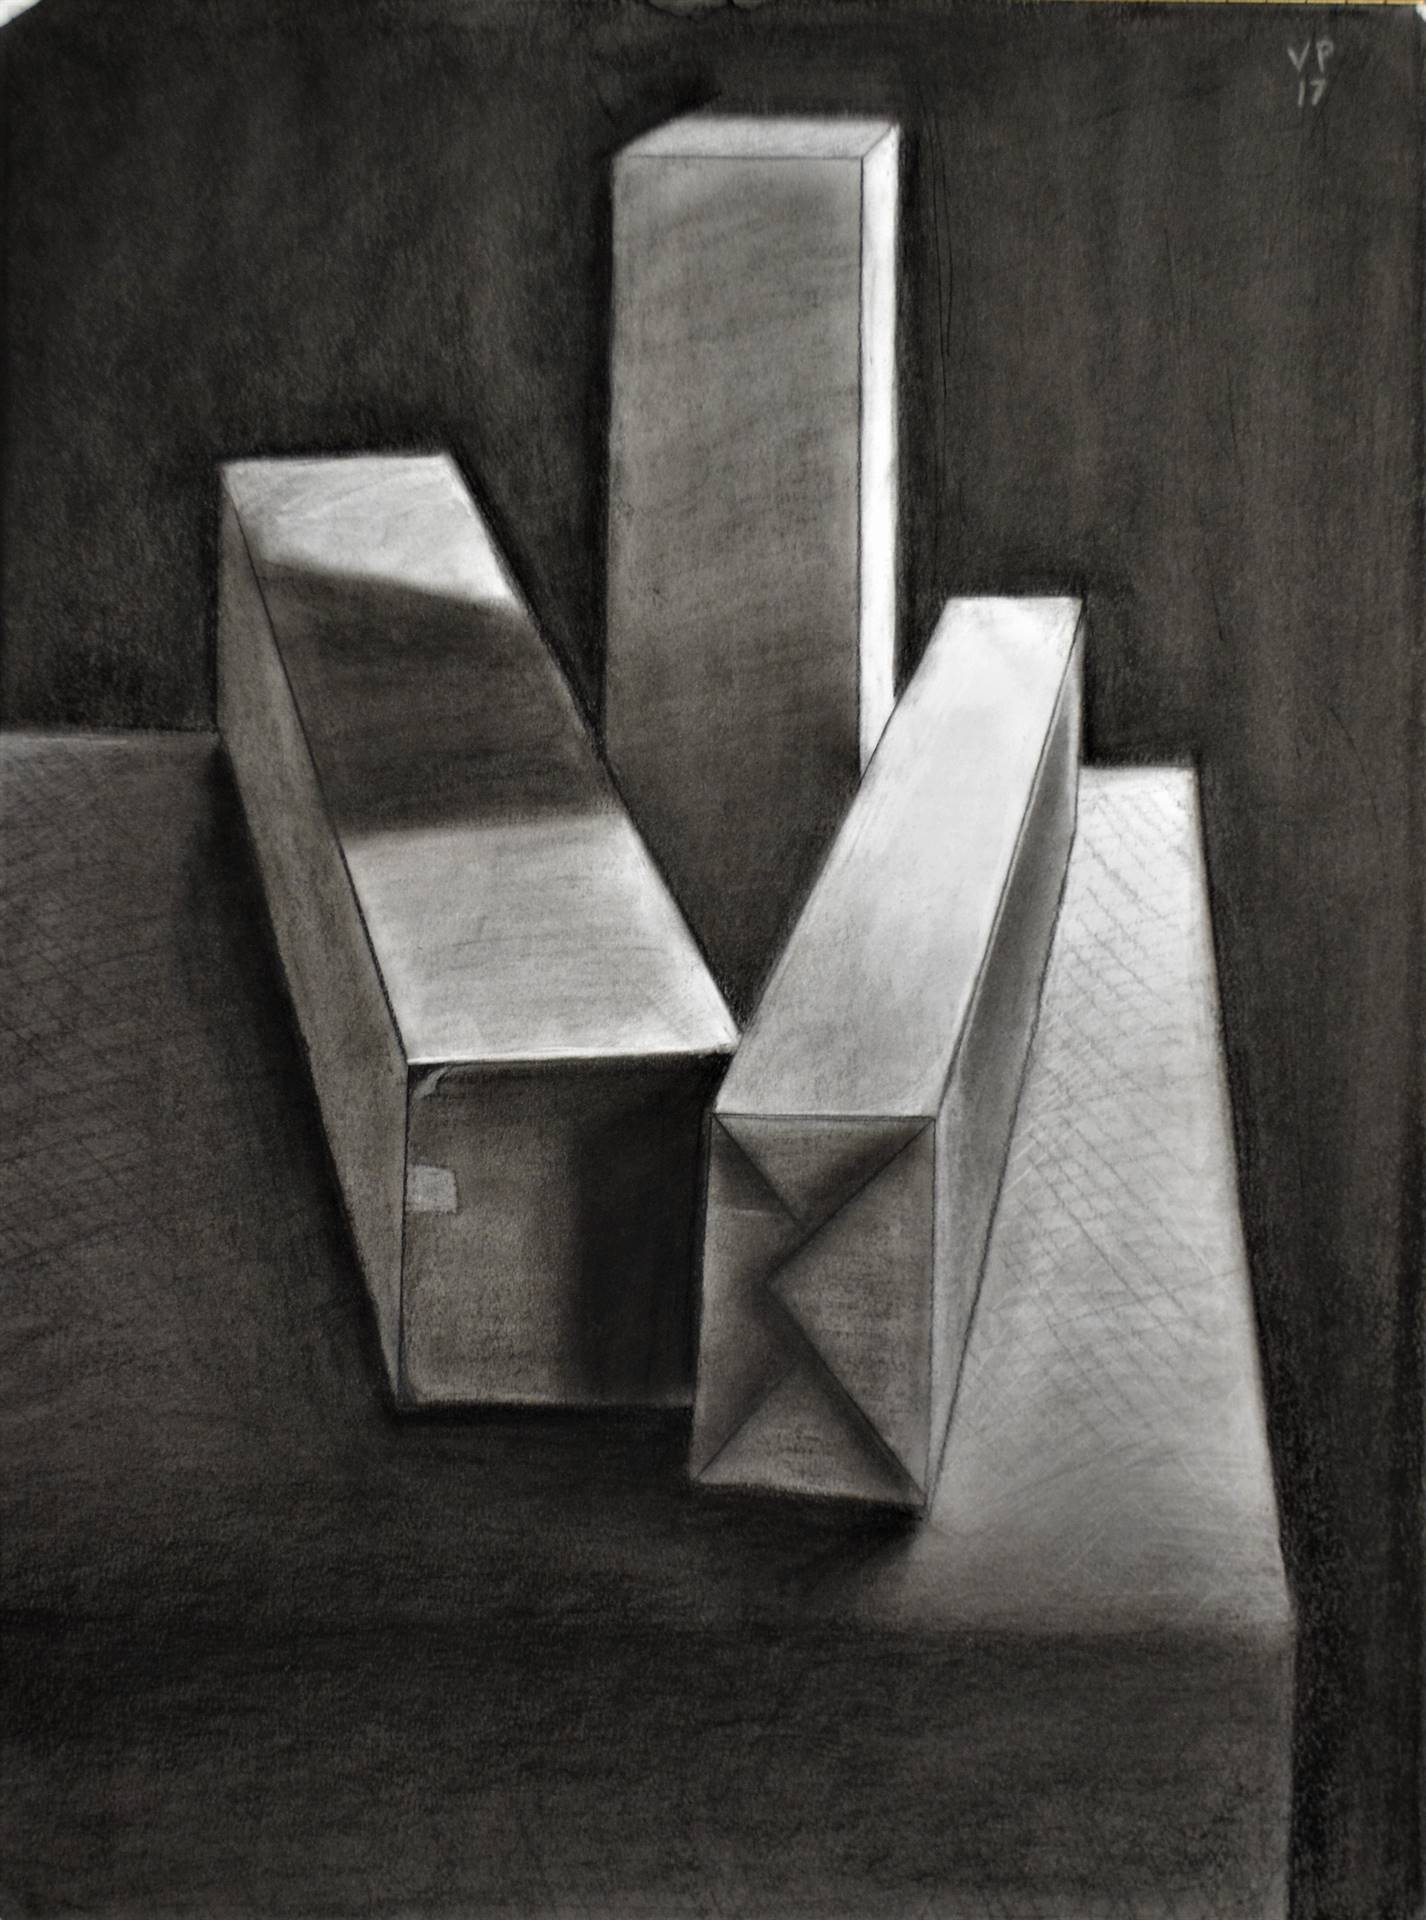 Victoria Prouty, Rectilinear Still-Life, charcoal on bristol, 24 x 18, 2017